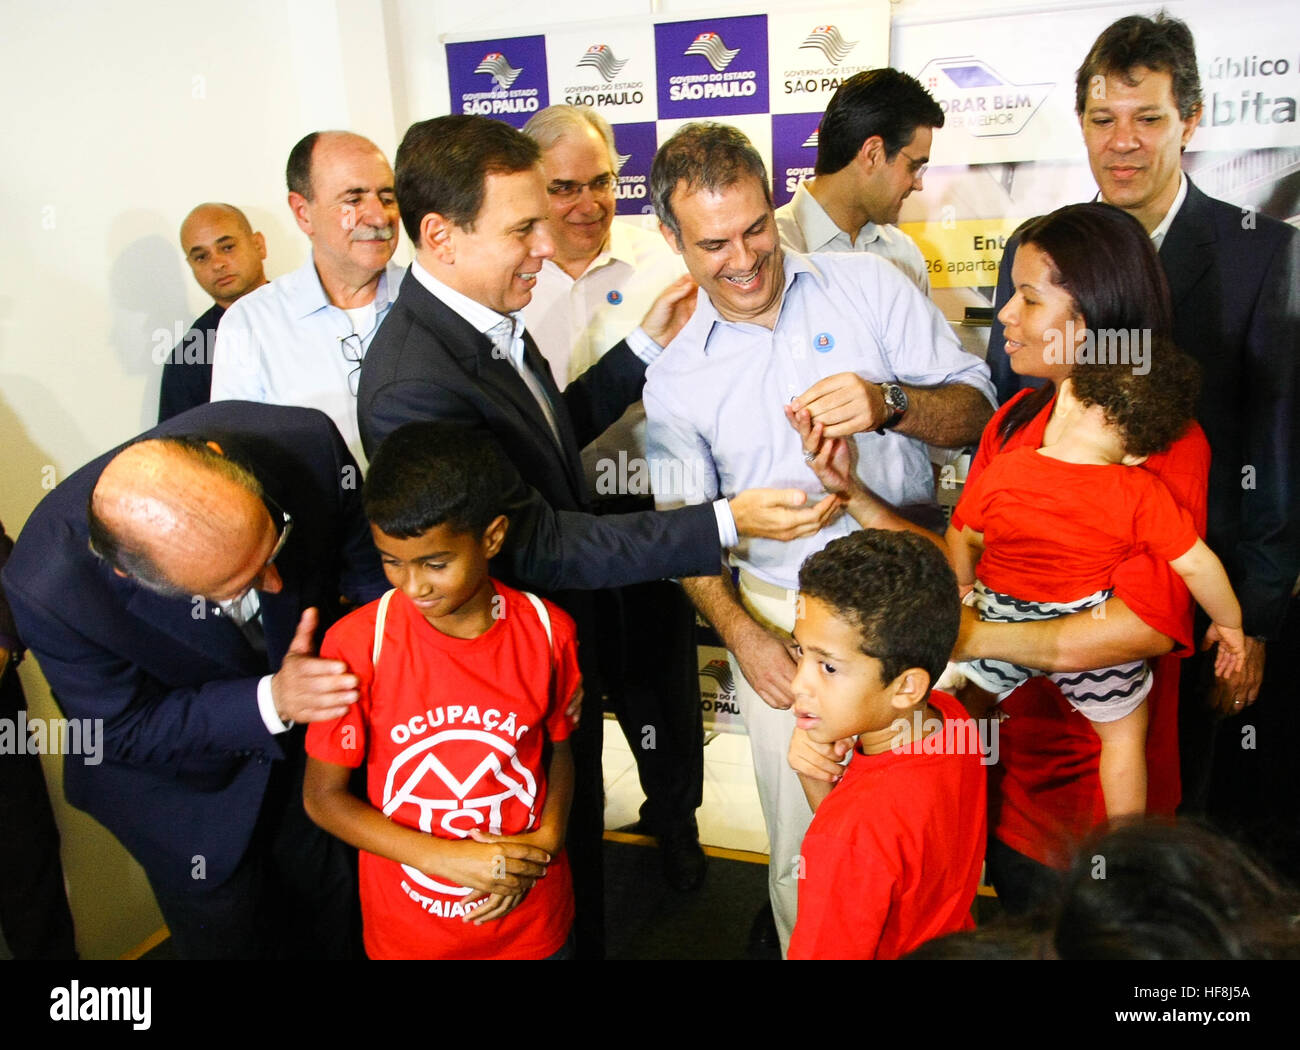 SÃO PAULO, SP - 29.12.2016: ENTREGA DE APARTAMENTOS DA PRIMEIRA PPP - Pictured elected mayor João Doria family makes for key delivery. Governor Geraldo Alckmin delivered on the morning of Thursday (29), at Rua São Caetano in downtown São Paulo, 126 apartments of the first Public-Private Partnership (PPP) in the country housing for low-income families. They attended the event Mayor Fernando Haddad and the mayor elected John Doria. (Photo: Aloisio Mauricio/Fotoarena) Stock Photo